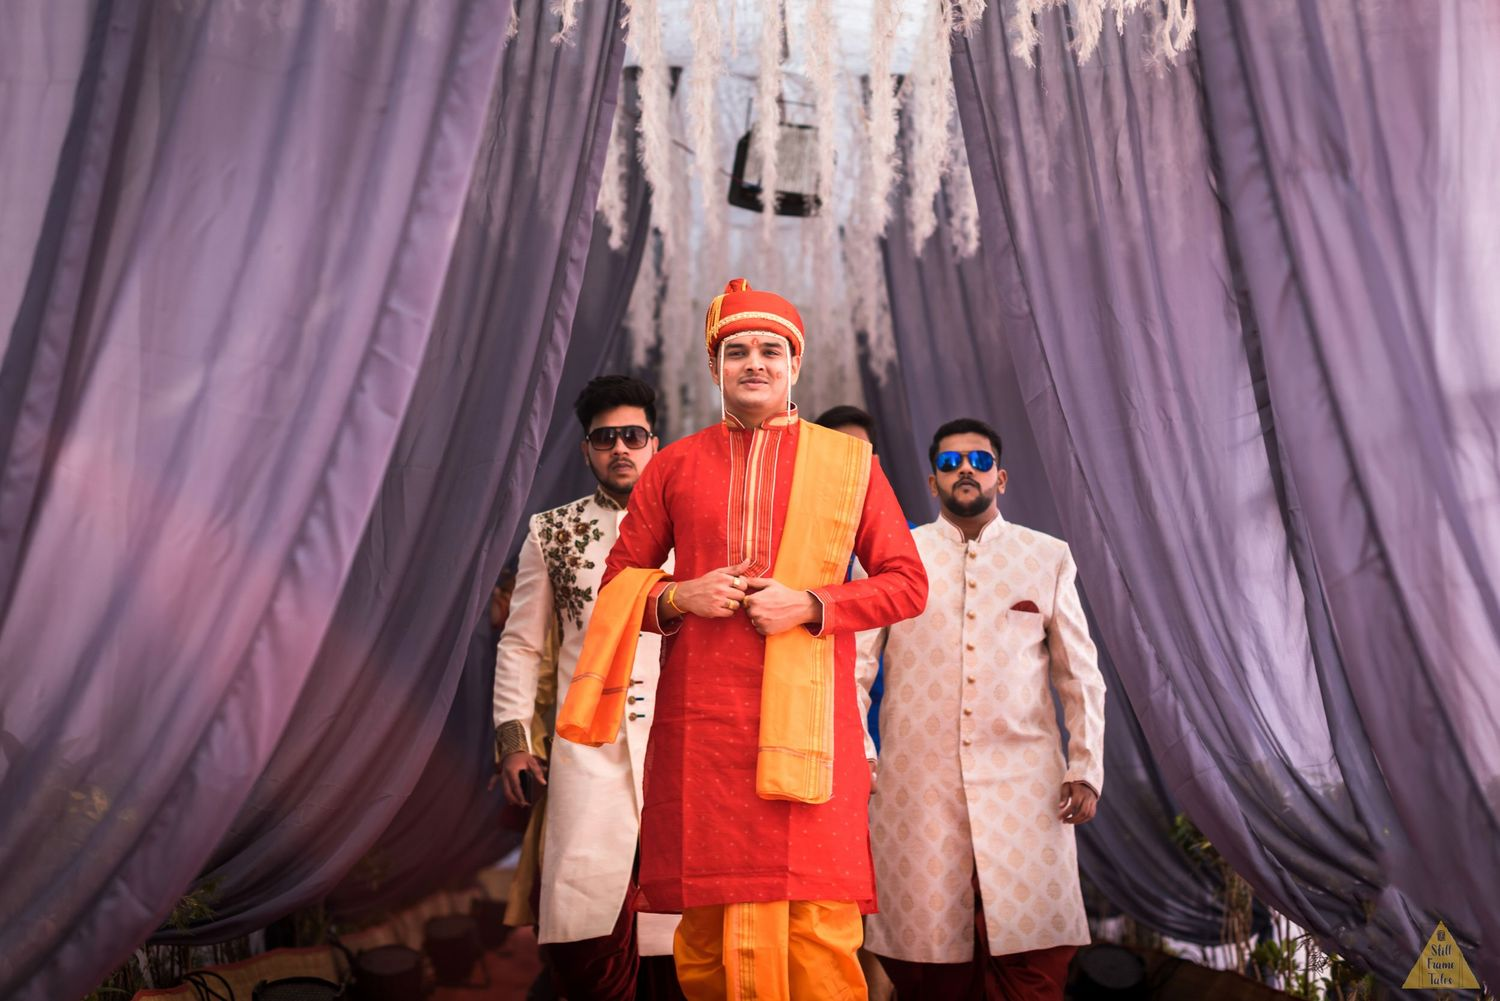 Groom entering at wedding location with his squad